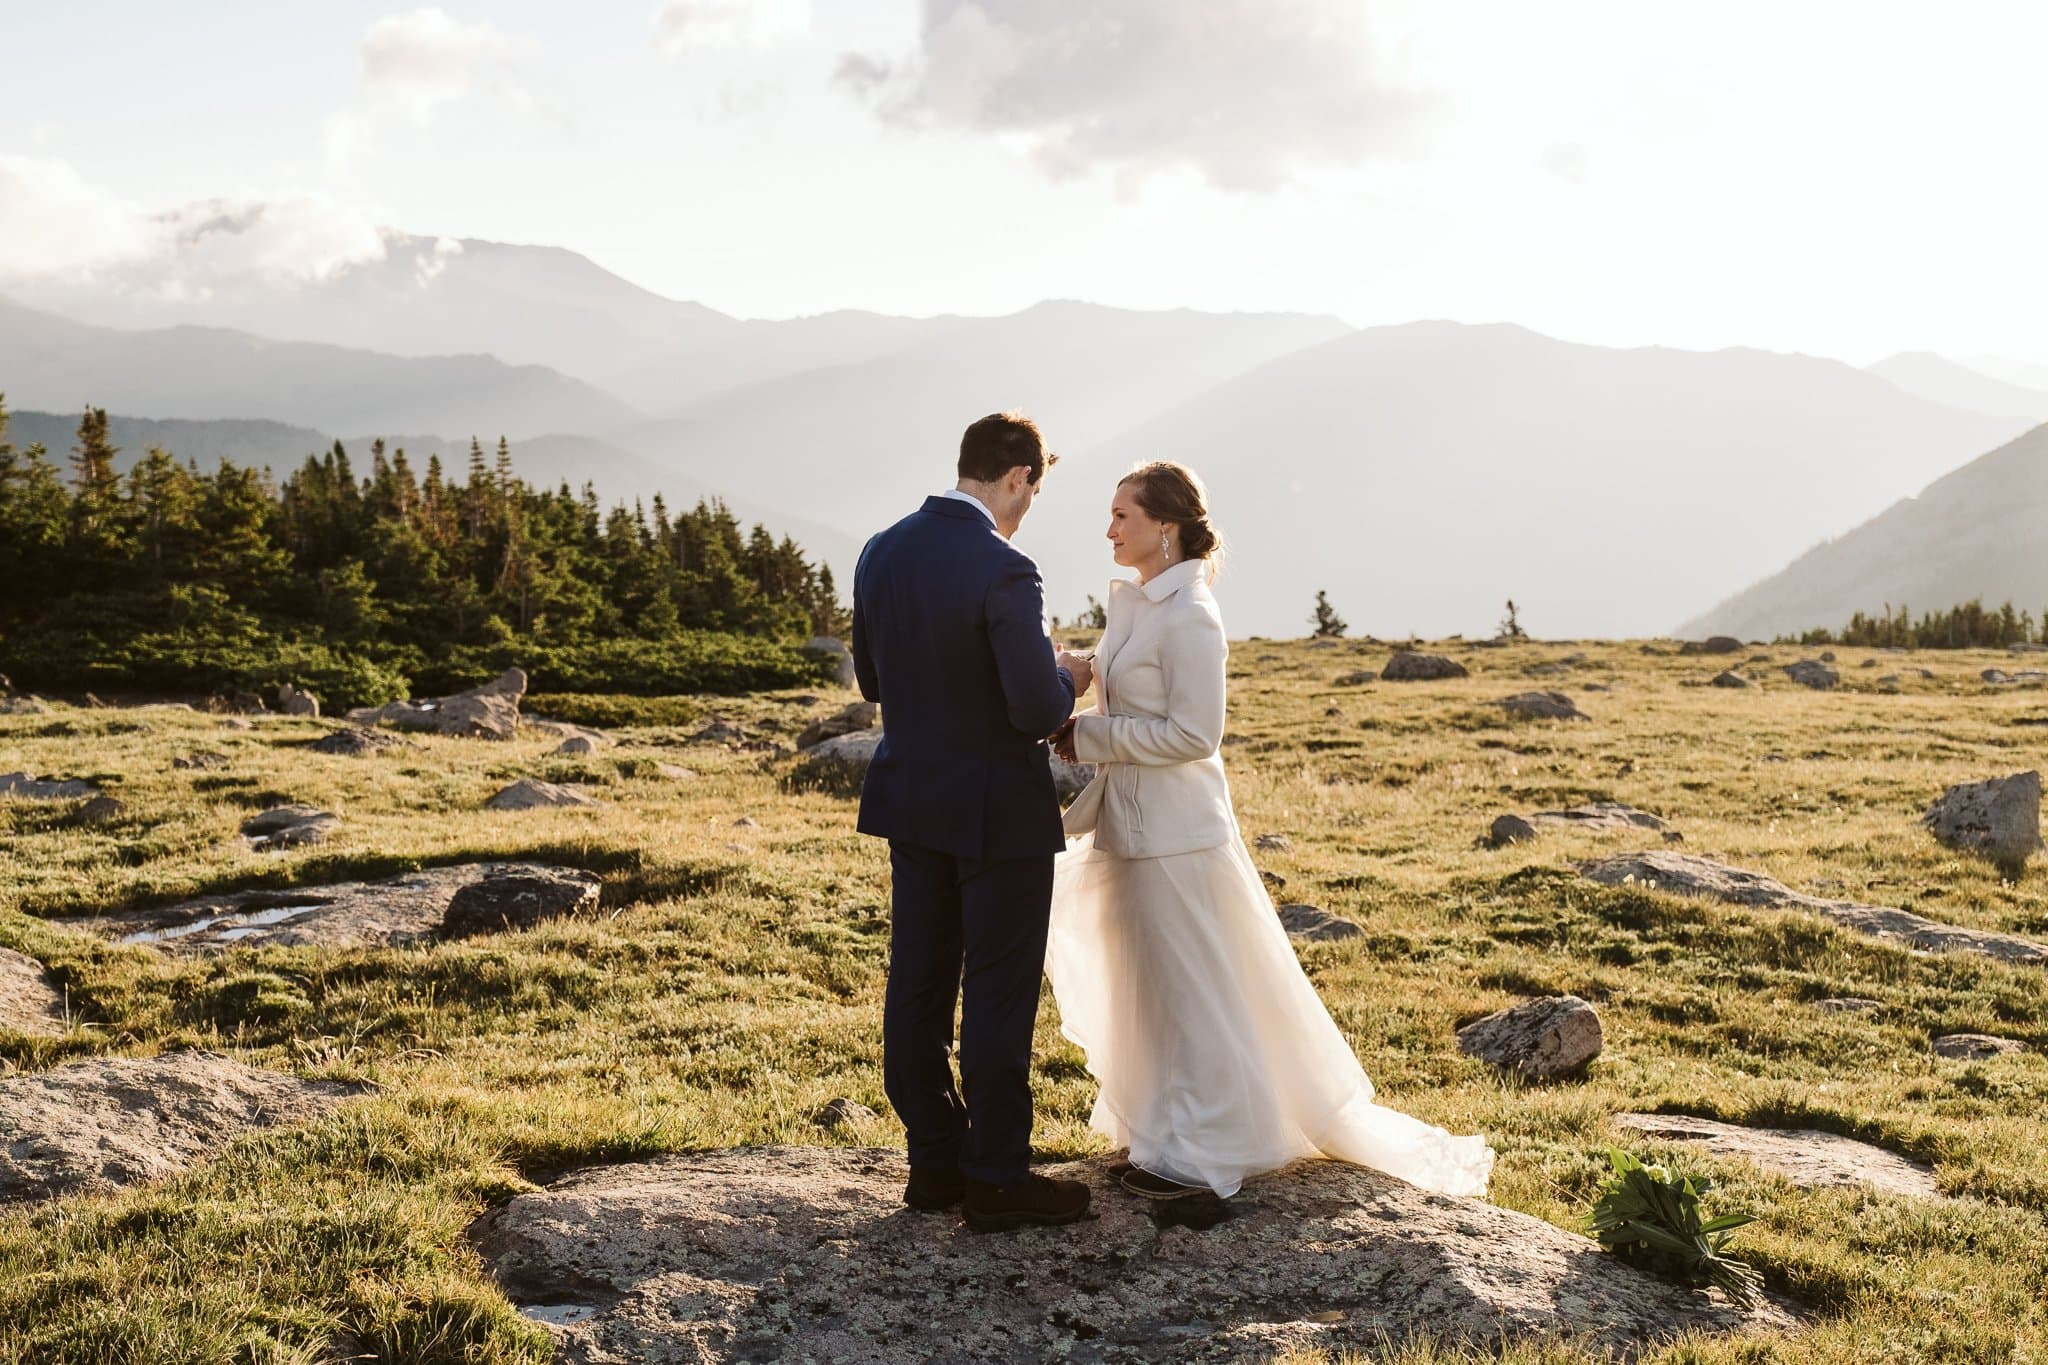 Elopement vow exchange in the mountains, Colorado adventure elopement